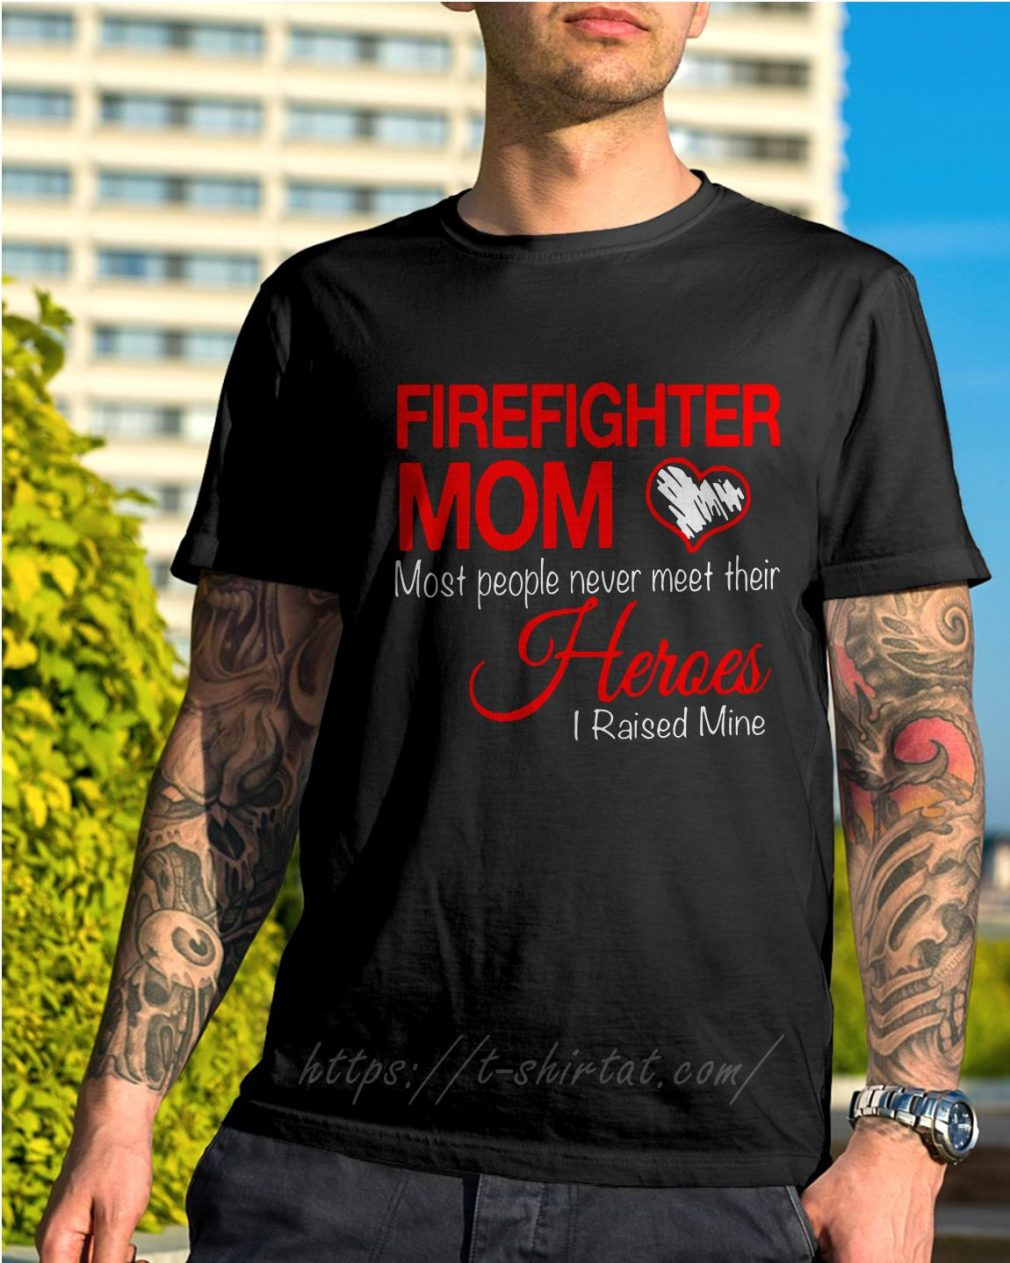 Firefighter mom most people never meet their heroes I raised mine shirt